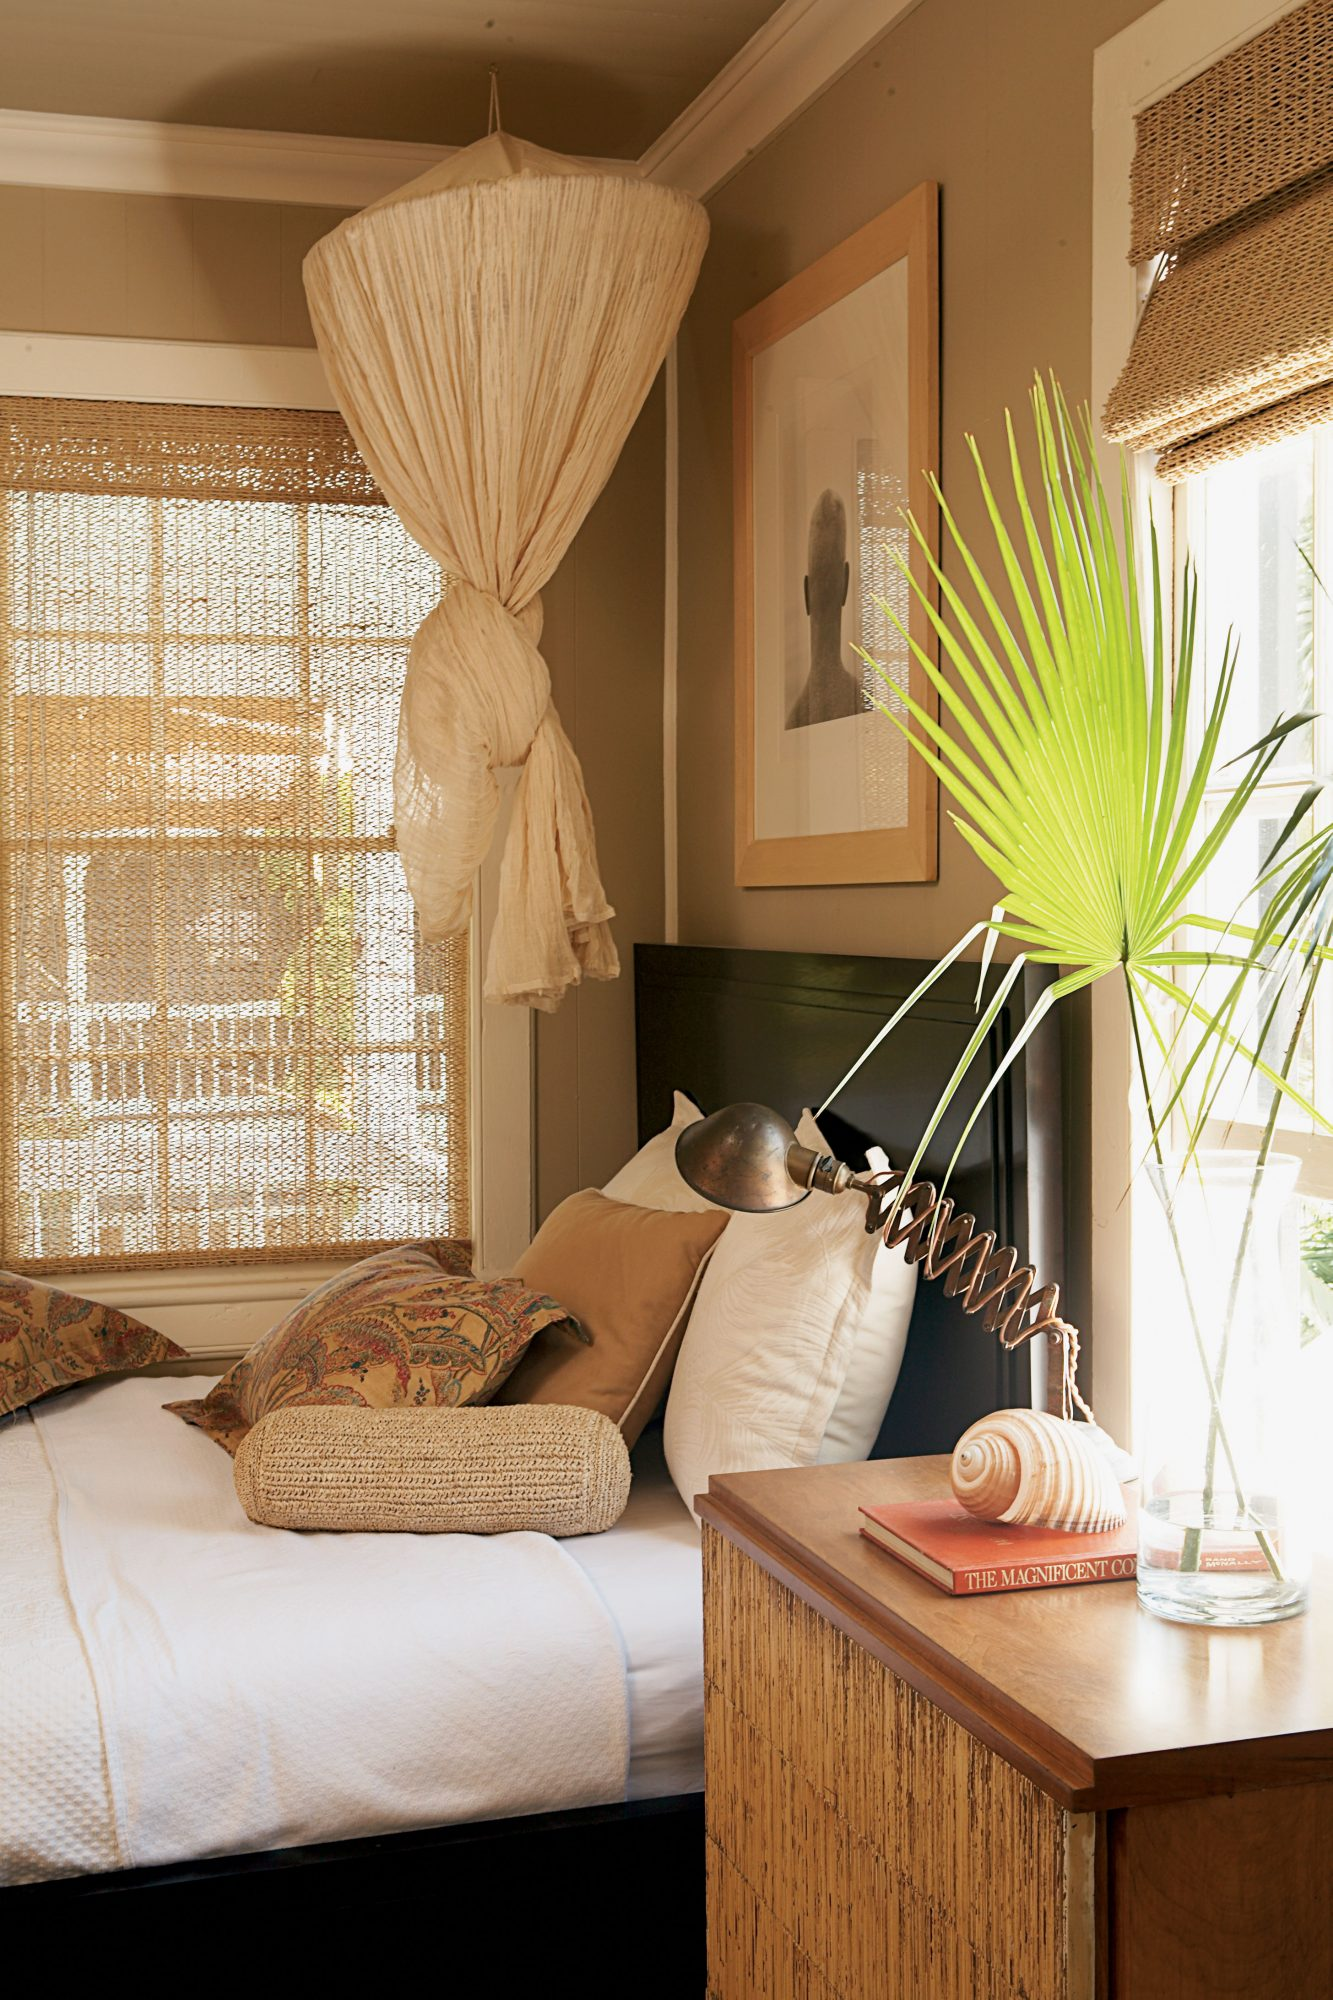 Gauzy netting can be draped over the bed to lend a dreamlike quality to this master bedroom.